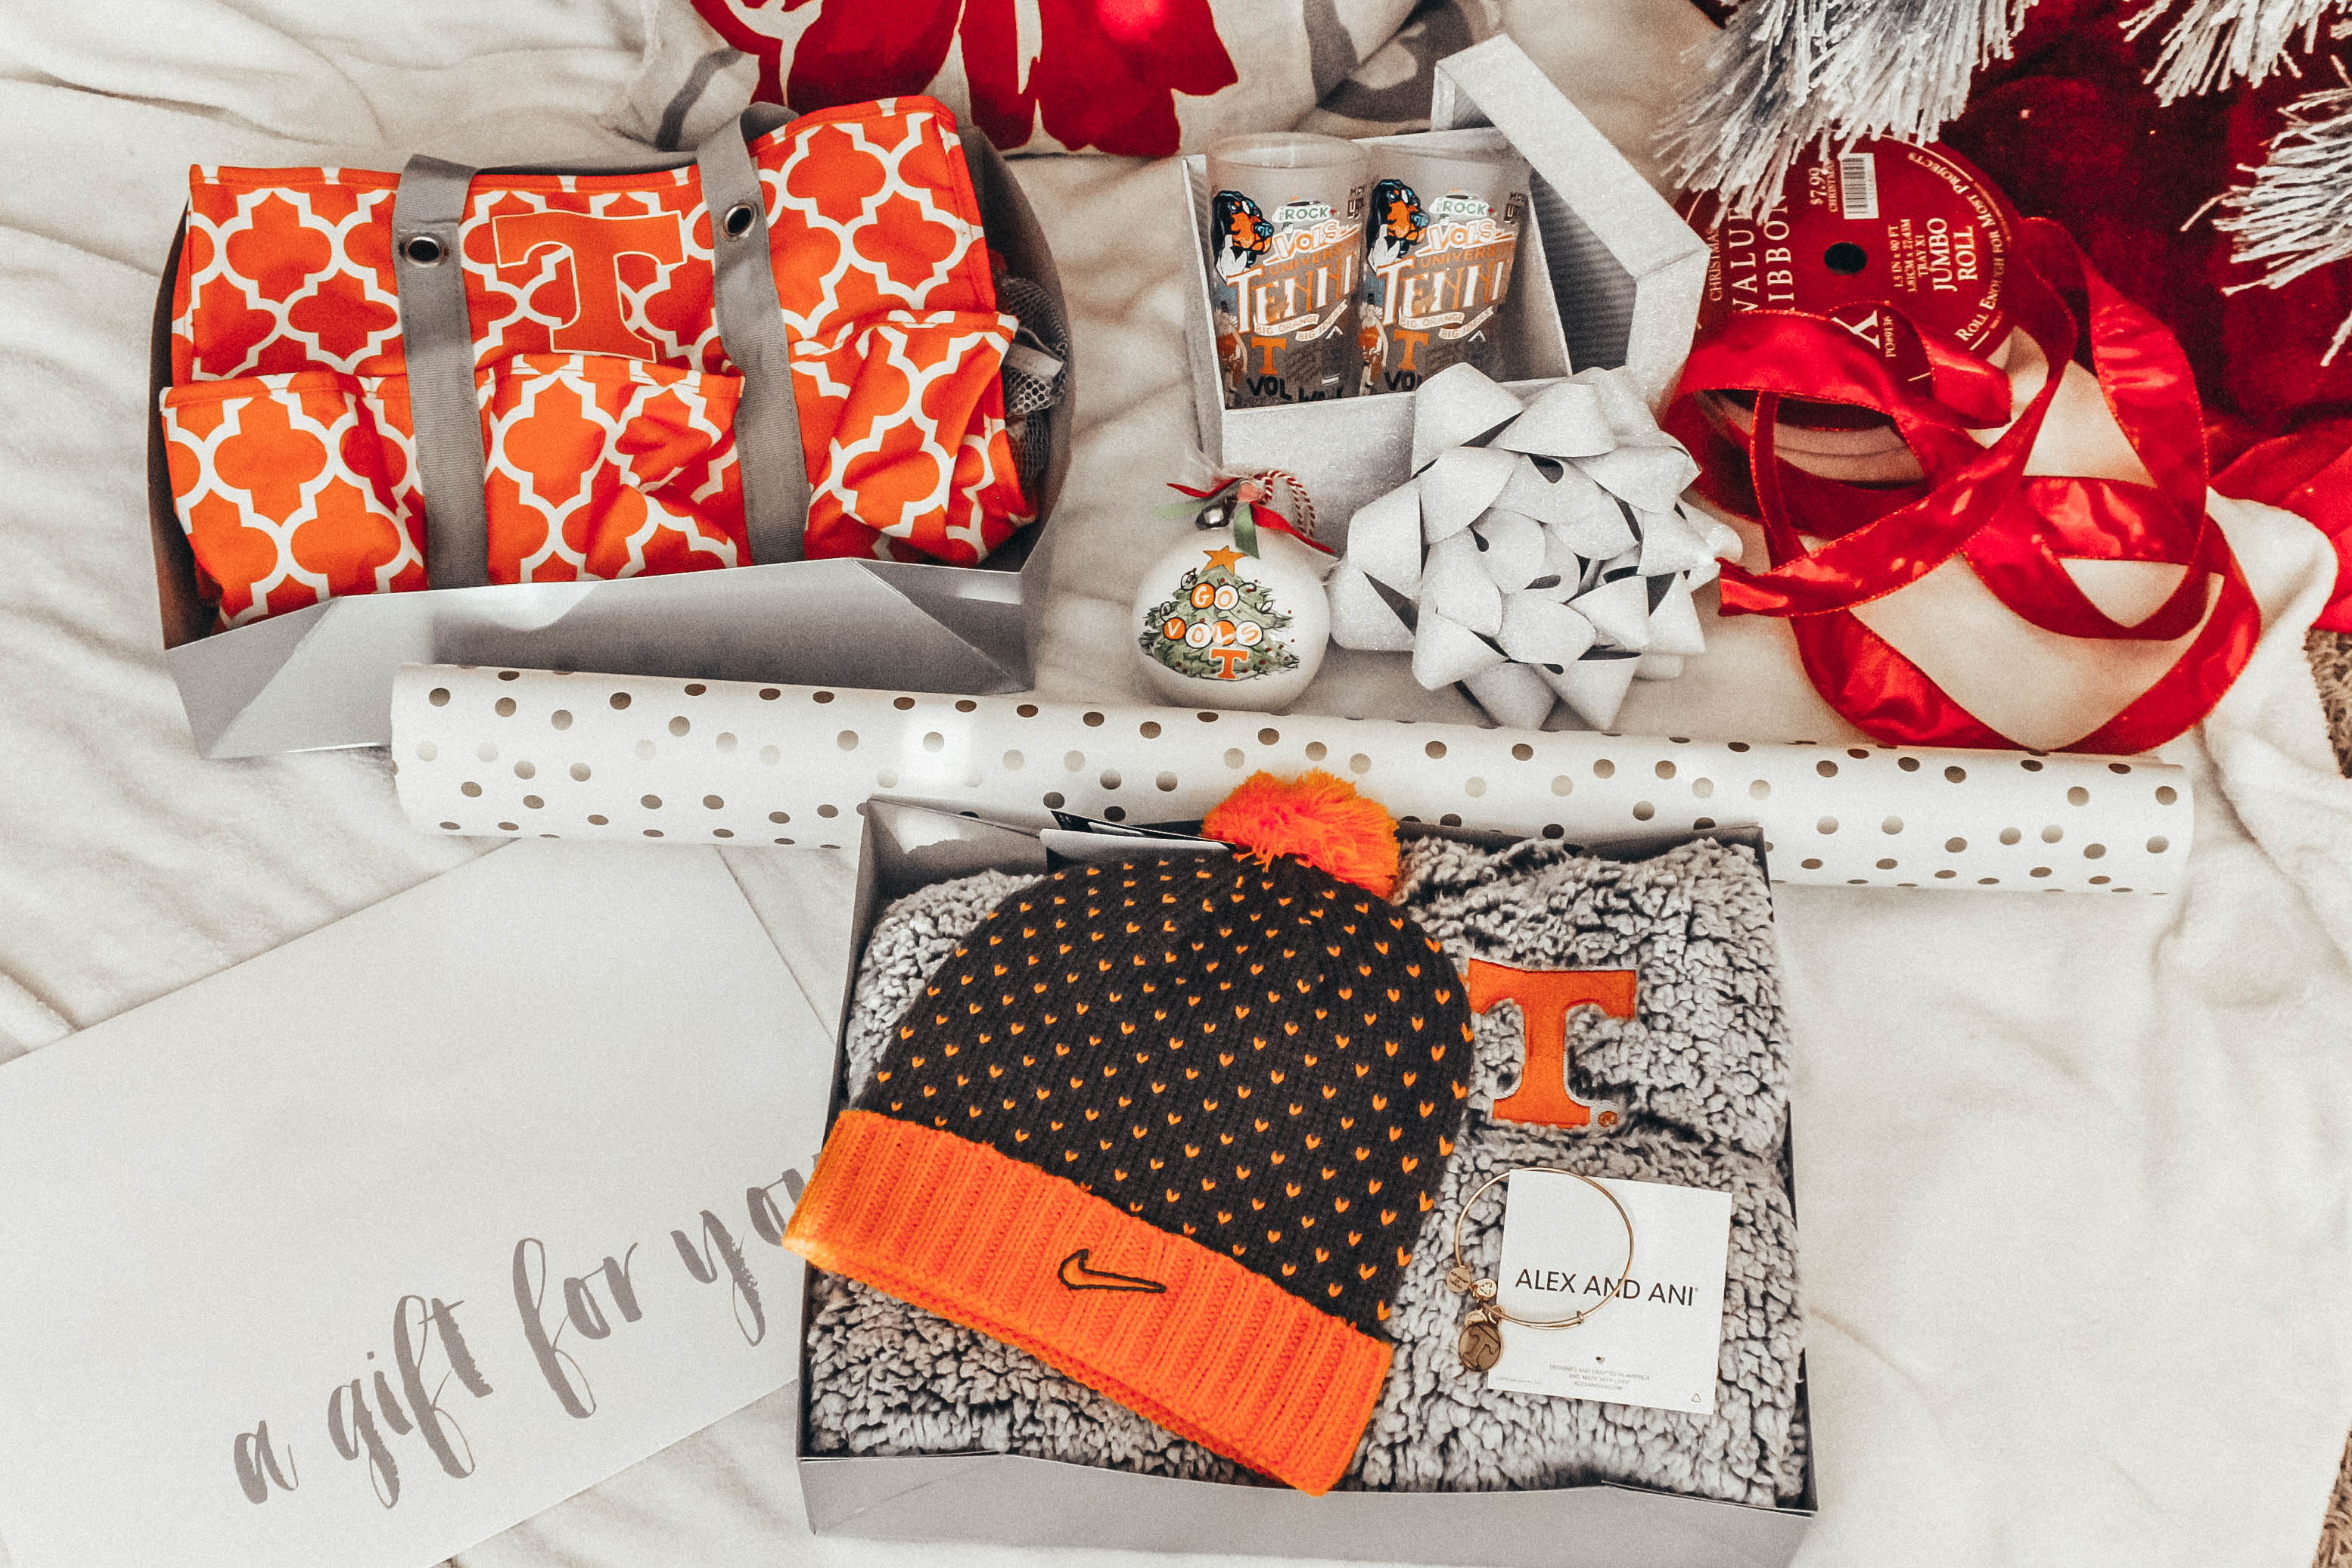 Last Minute Gift Ideas for the Vol Fan in Your Life | love 'n' labels www.lovenlabels.com